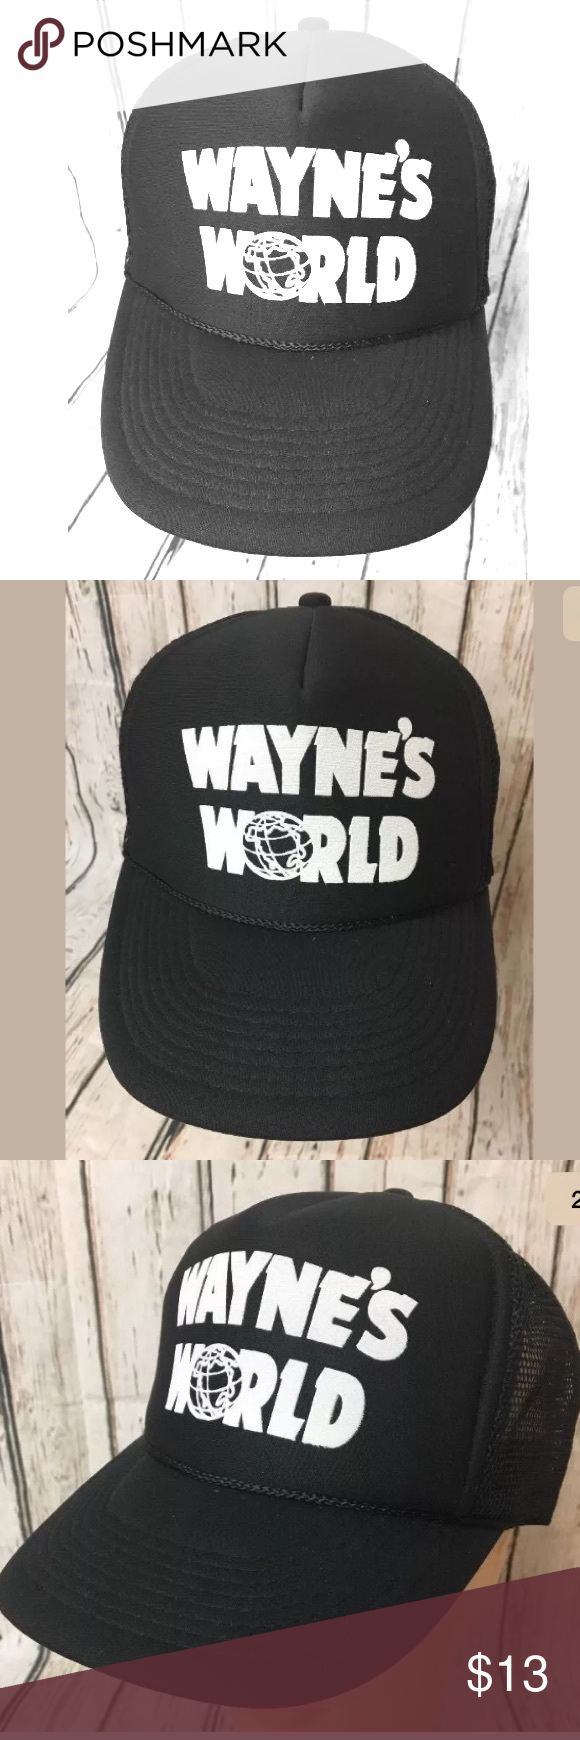 c52a5755193 Wayne s World Hat Wayne s World Black SnapBack Trucker Hat